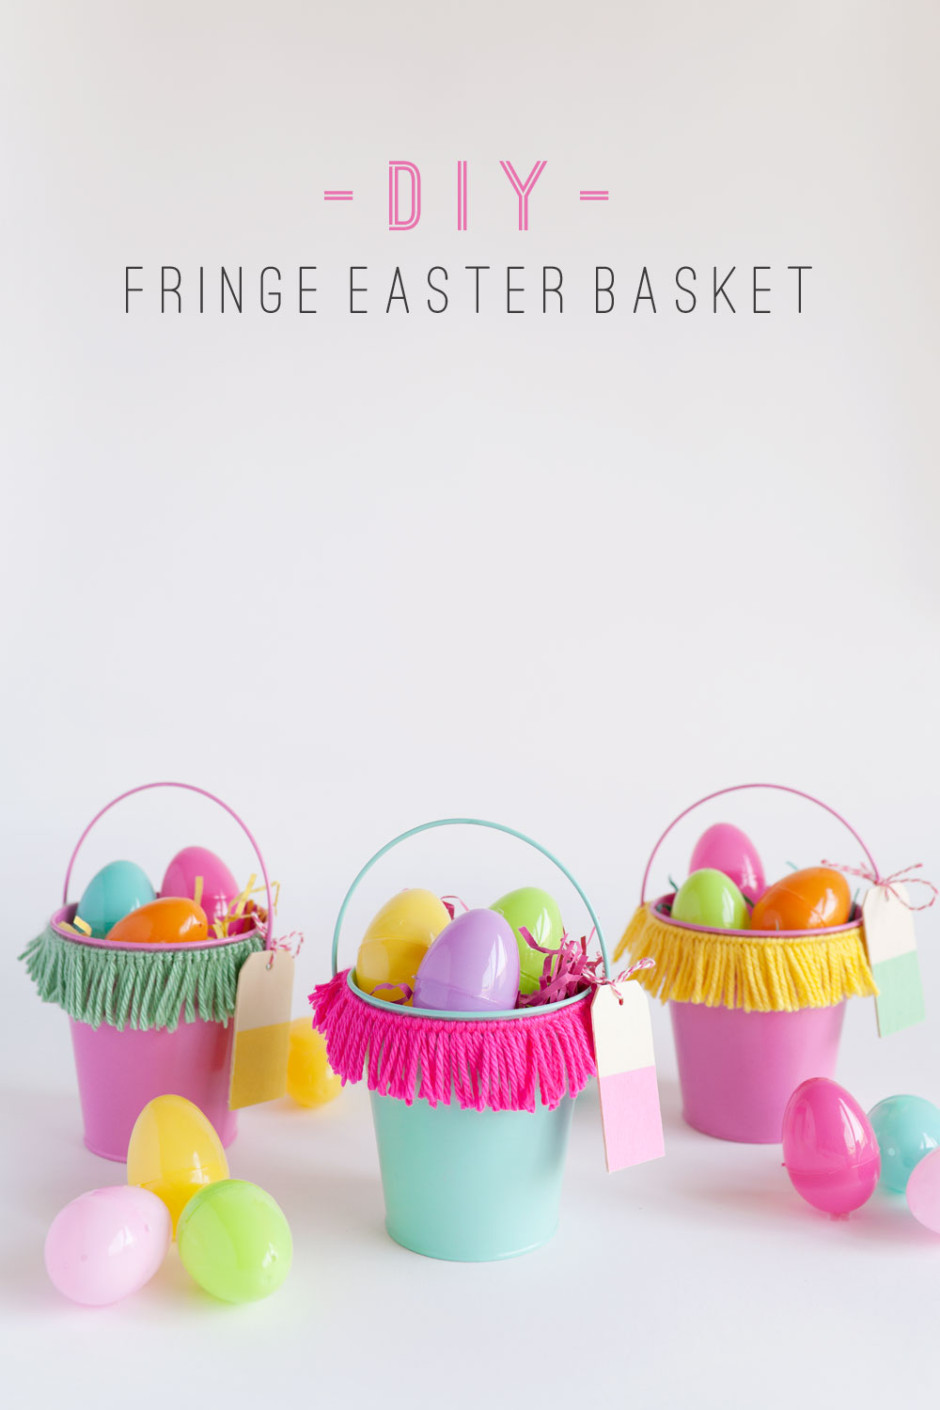 DIY-Easter-Fringe-Basket